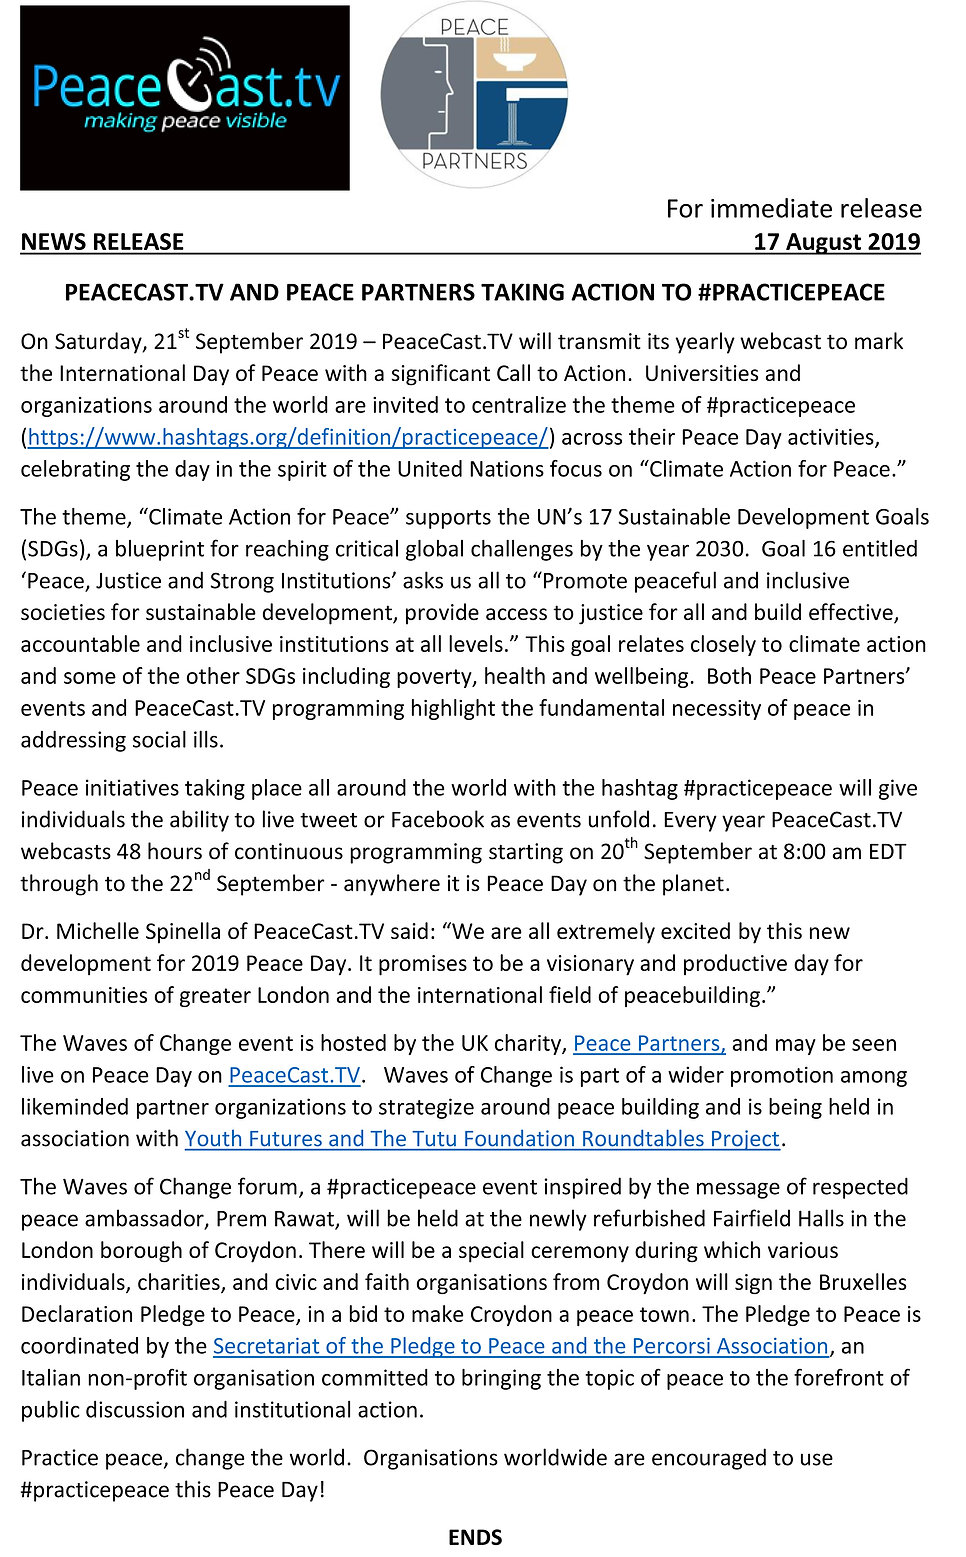 Peacecast TV and PP News Release a.jpg